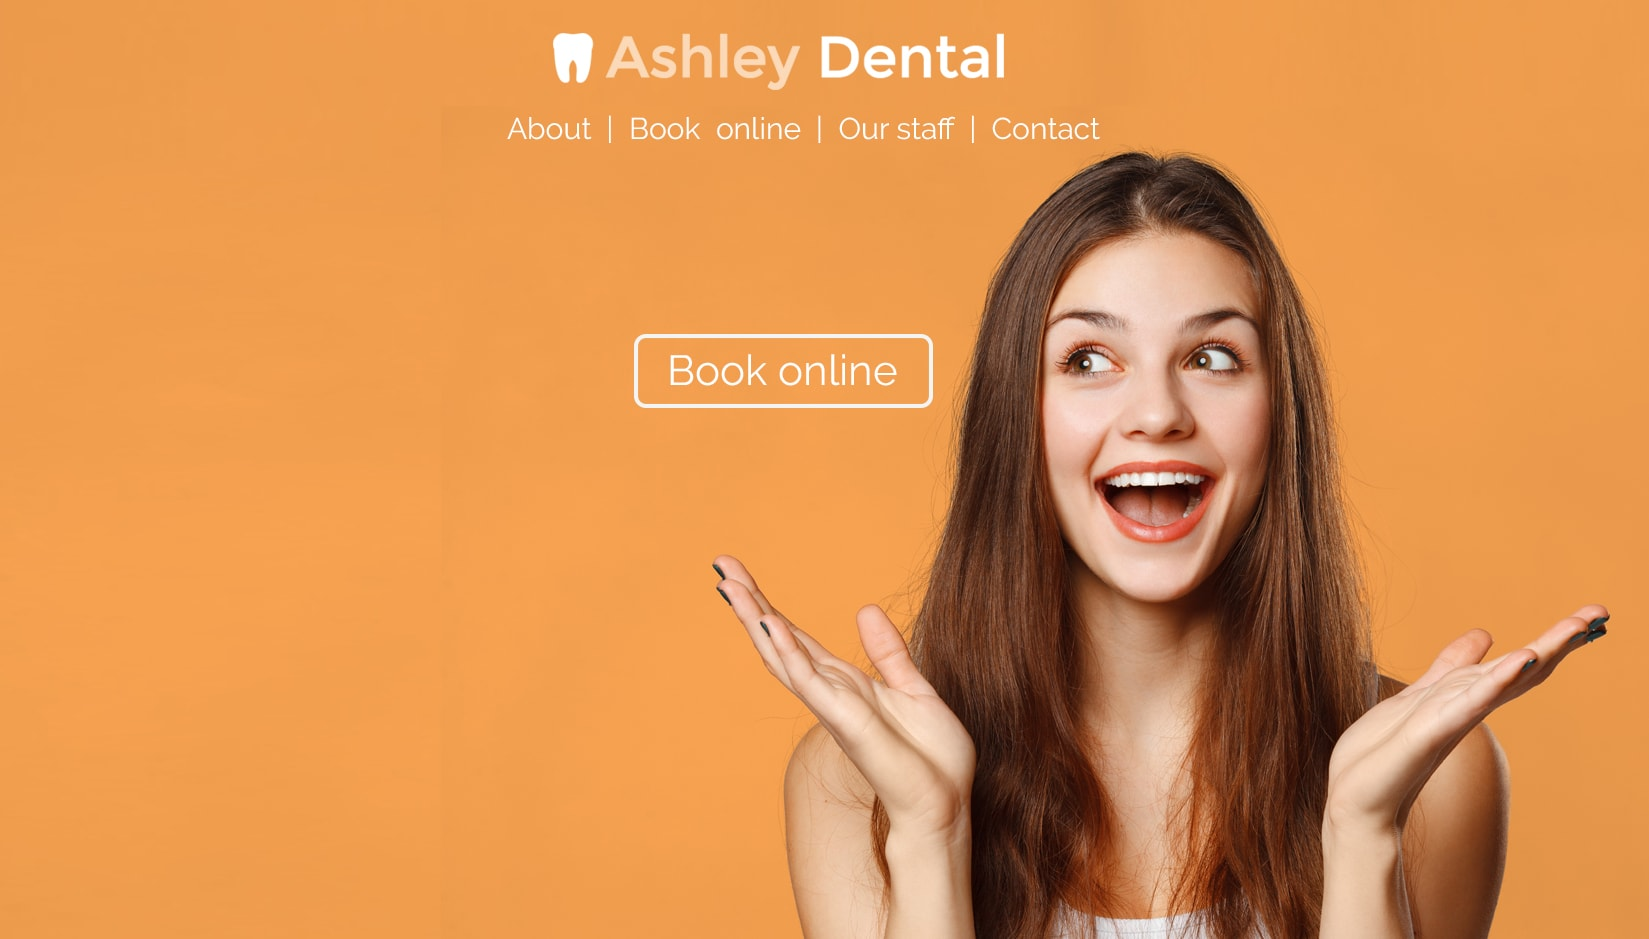 ashley_dental-min